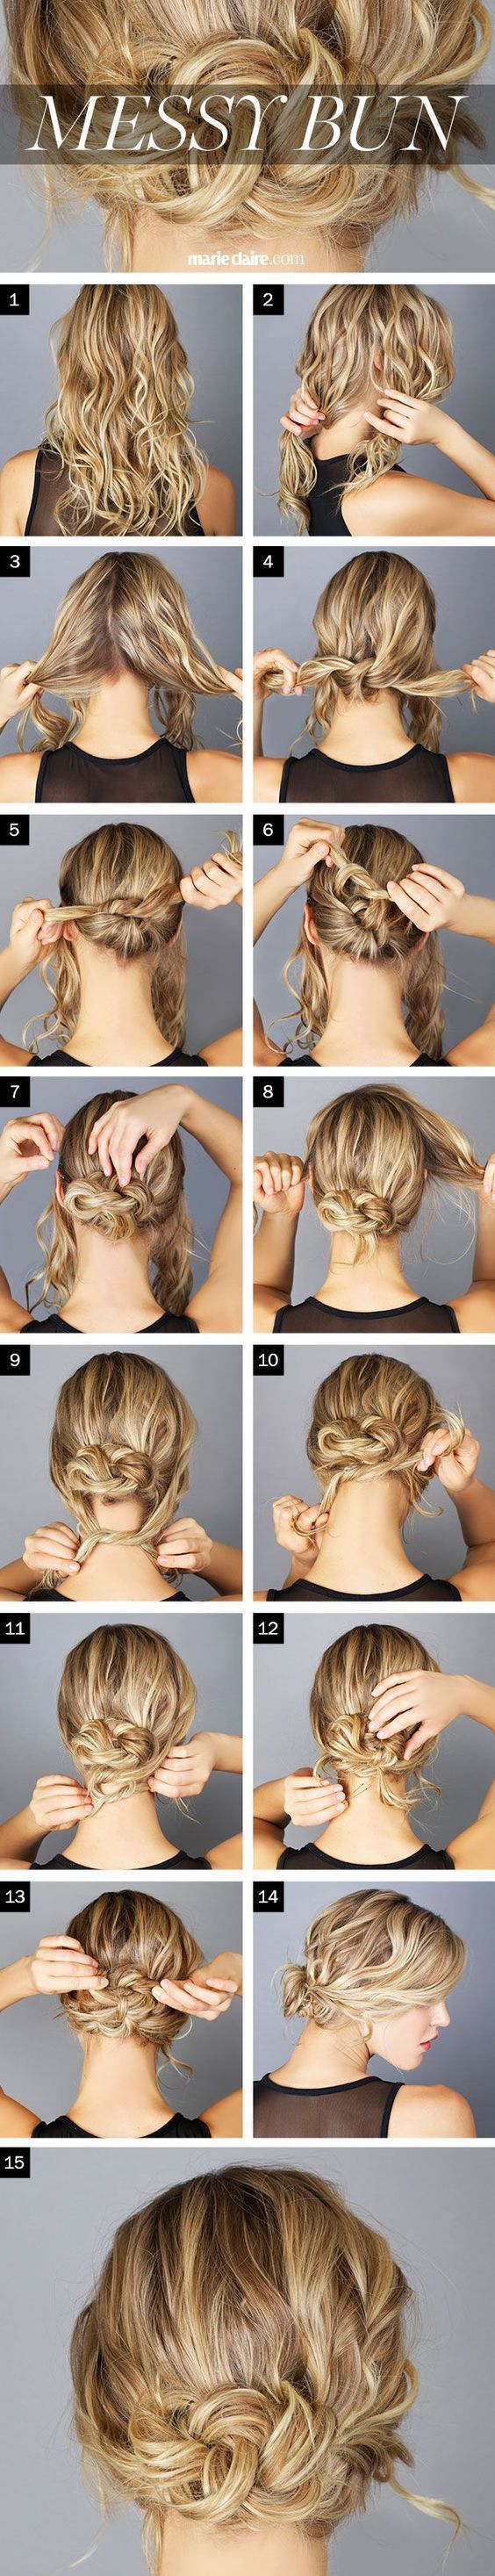 Messy Bun Tutorial for Long Hair